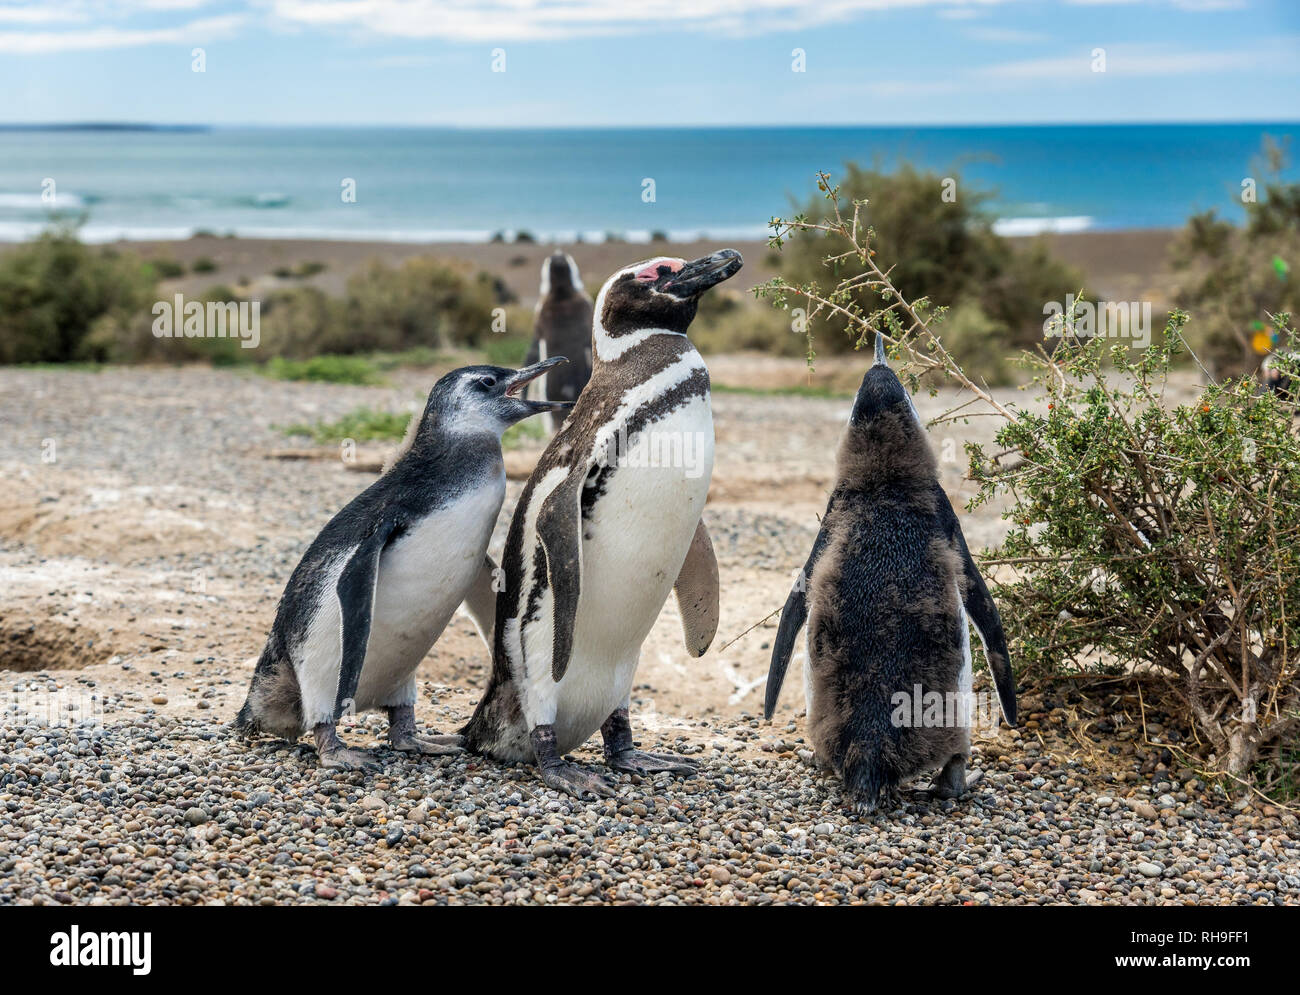 Punta Tombo is a peninsula into the Atlantic Ocean 110 km (68 mi) south of Trelew in Chubut Province, Argentina, where there is a large colony of Mage Stock Photo